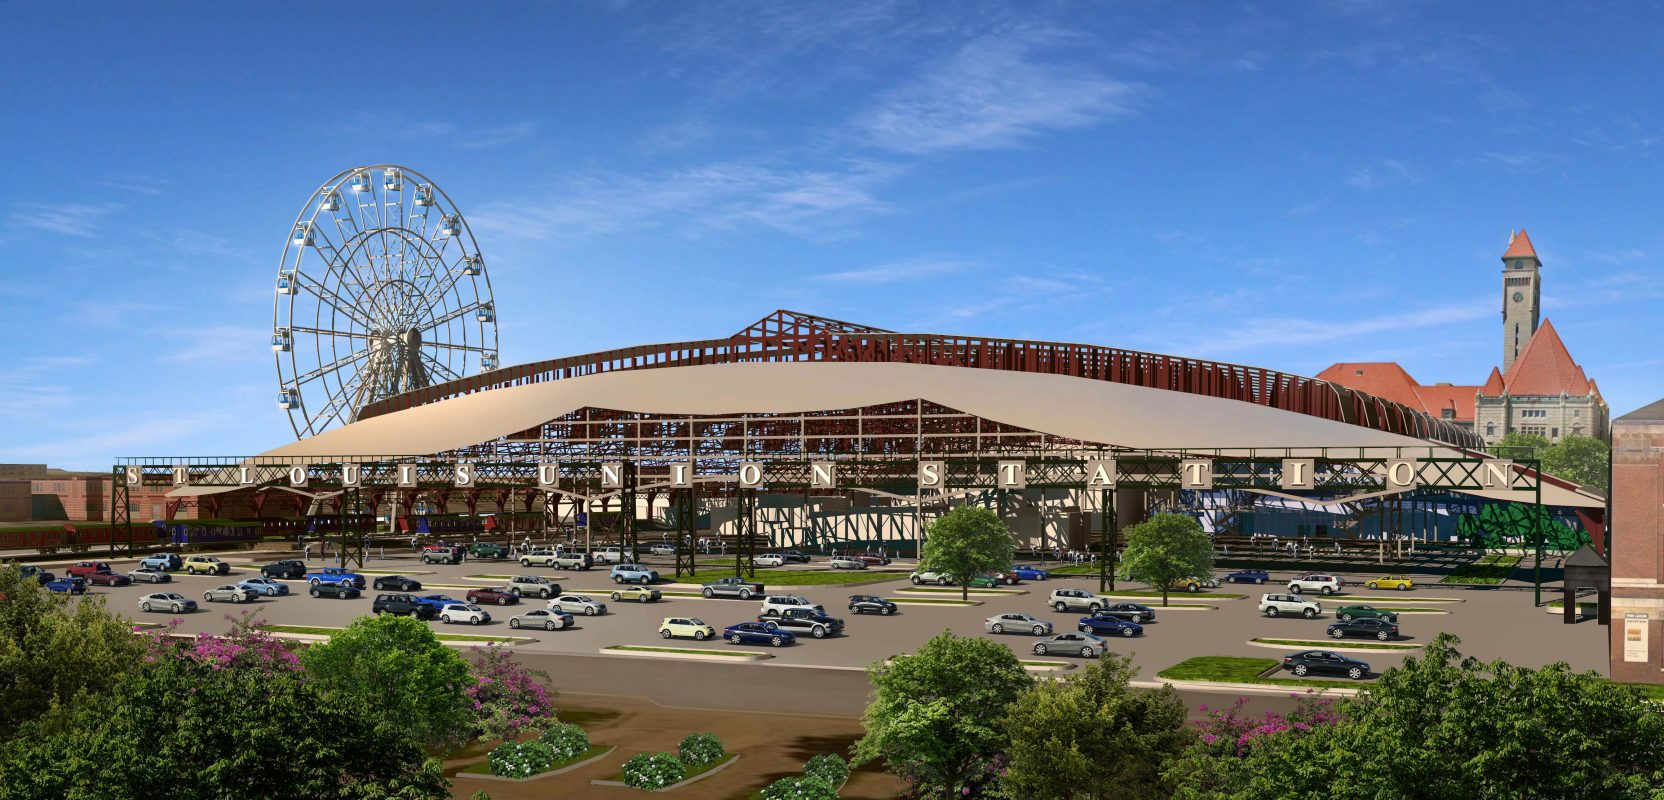 St. Louis Wheel Approved for Union Station